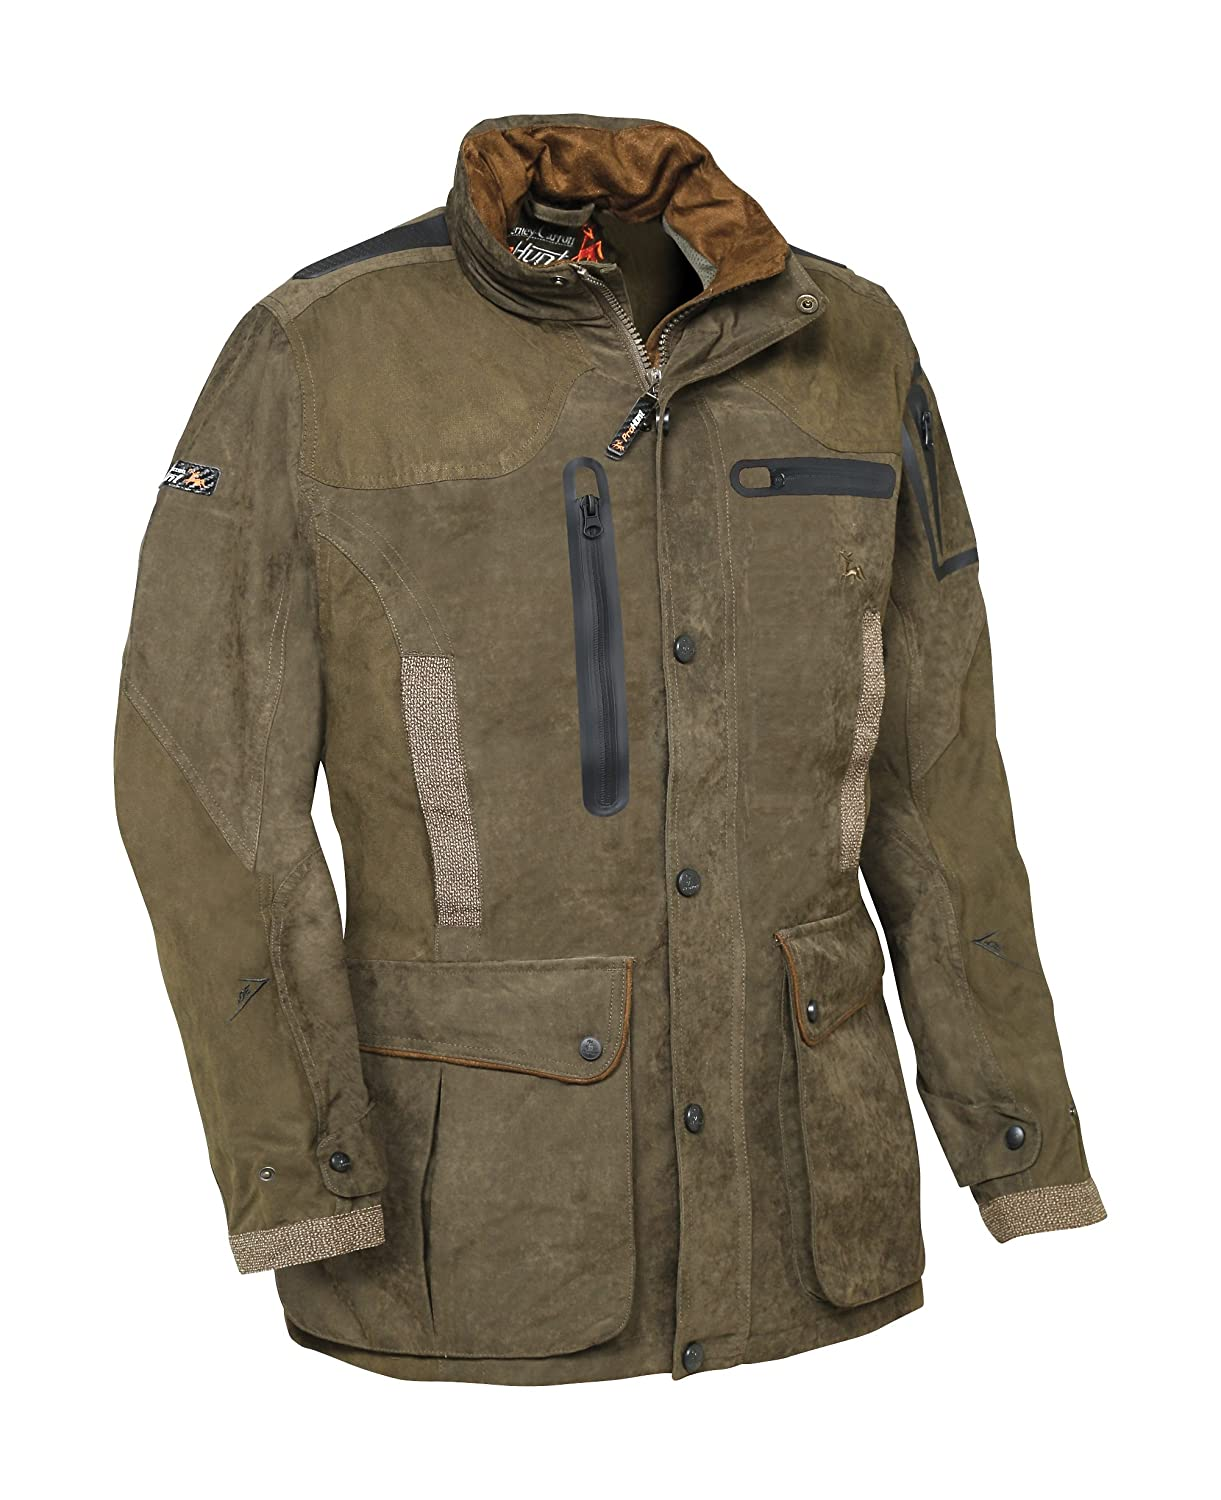 313d1e0aef2c6 Verney-Carron Sika Jacket - Olive Green - L-3XL (Shooting/Hunting):  Amazon.co.uk: Sports & Outdoors